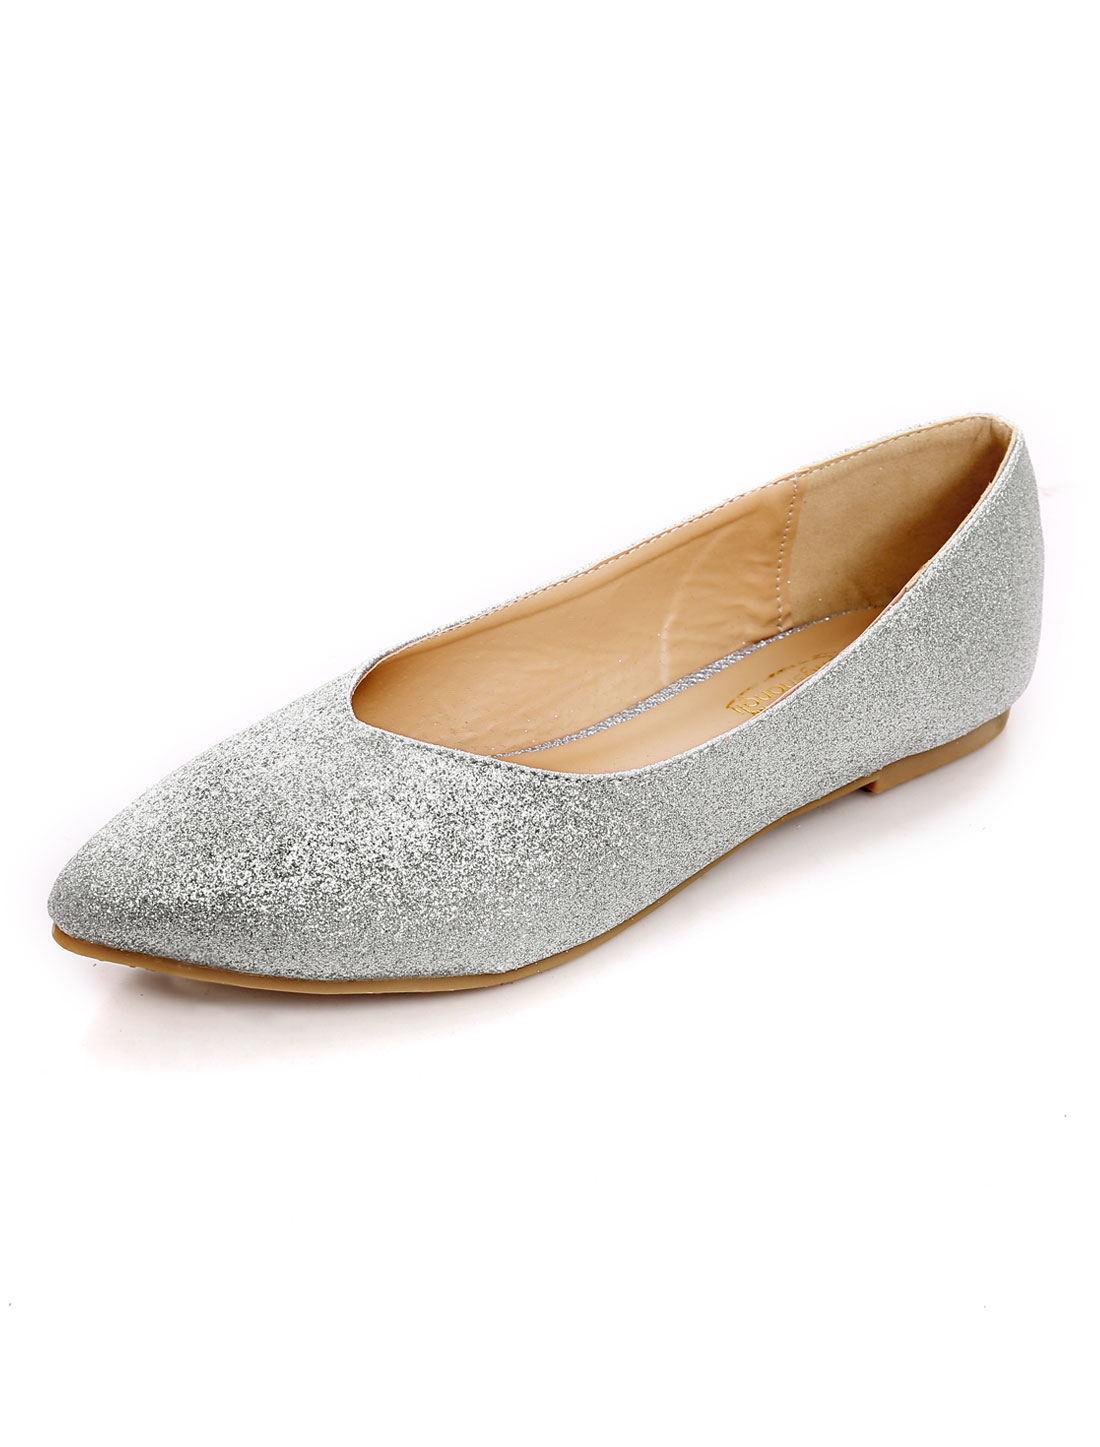 Ladies Shiny Decor Padded Outsole Flats Shoes Silver Tone US 9-9.5